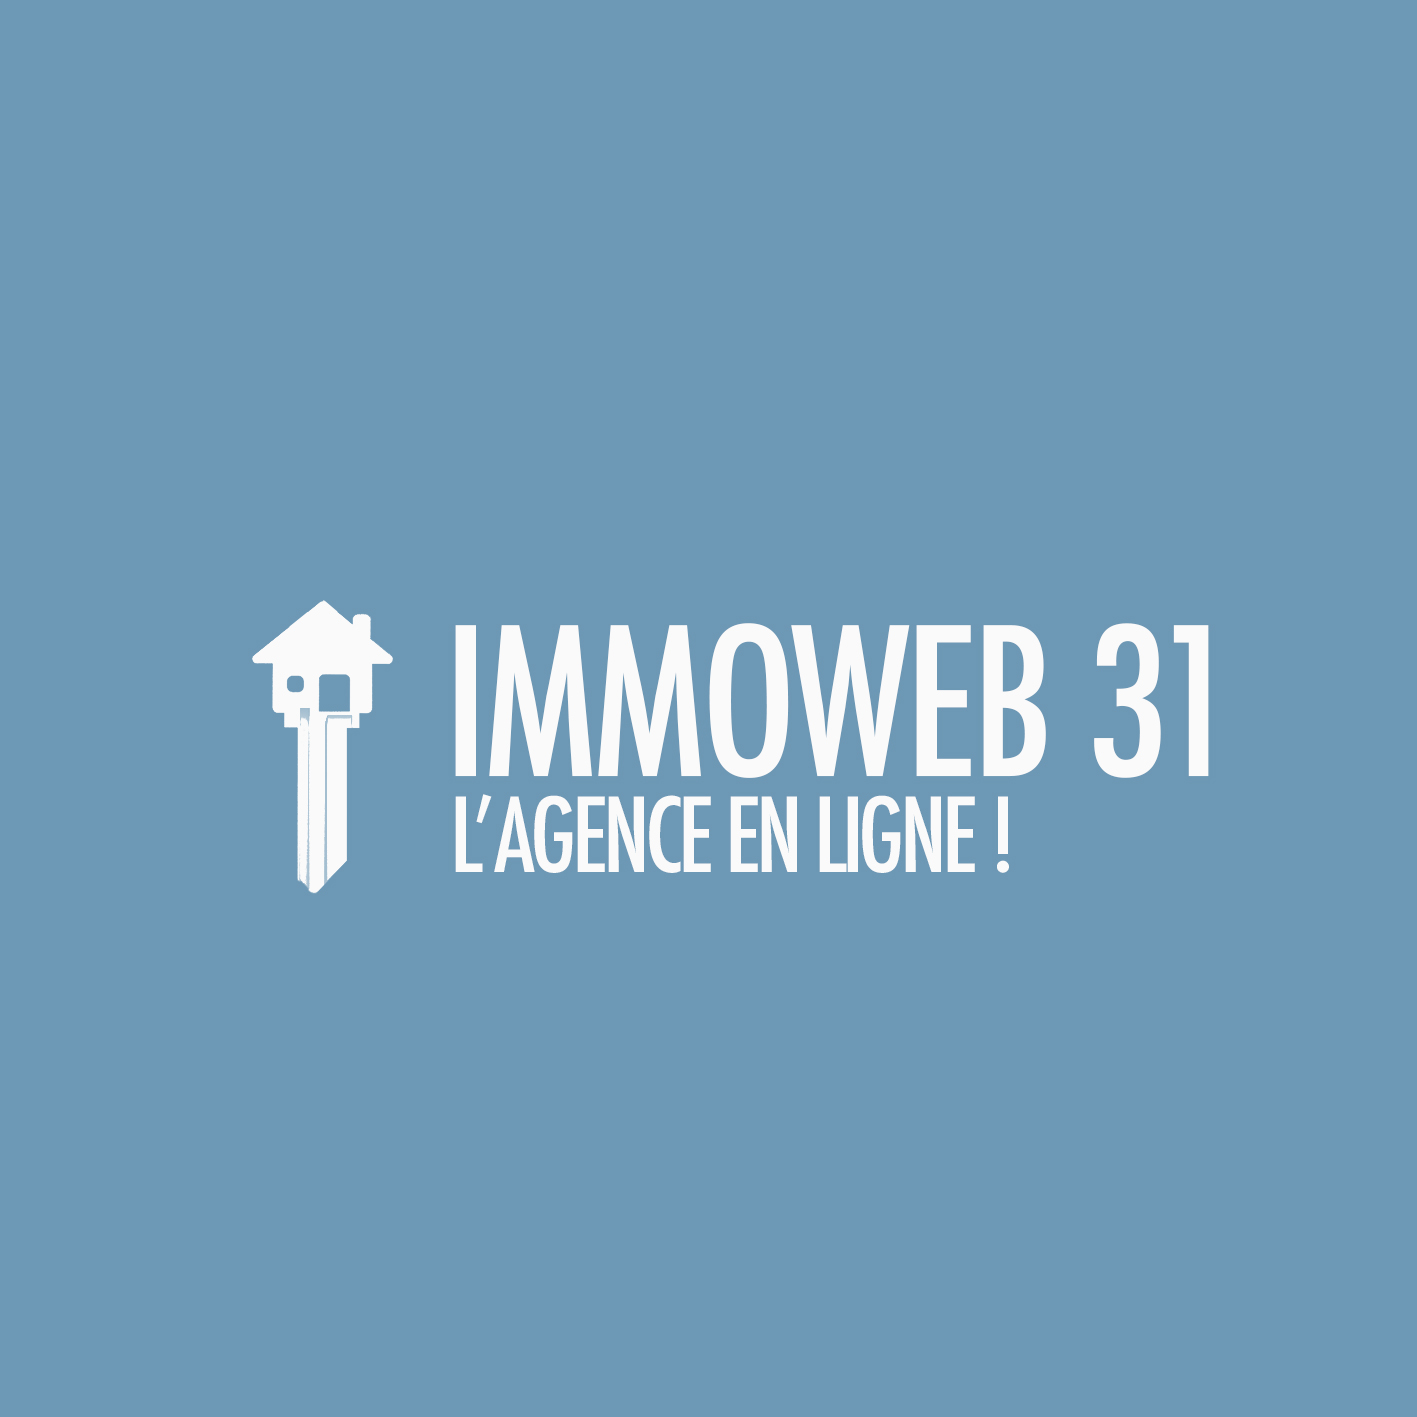 Immoweb31 agence immobilière Ayguesvives (31450)